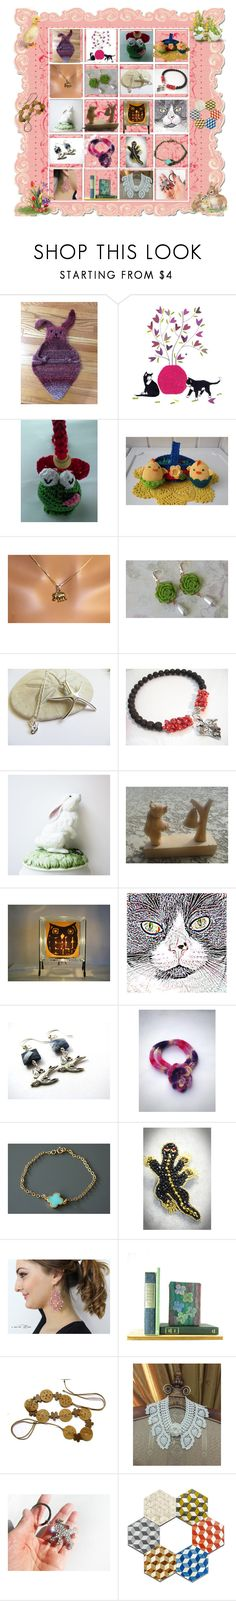 """""""Easter Shopping on Etsy"""" by cozeequilts ❤ liked on Polyvore featuring Herz, Gorham, Natural Blue, Peugeot and vintage"""